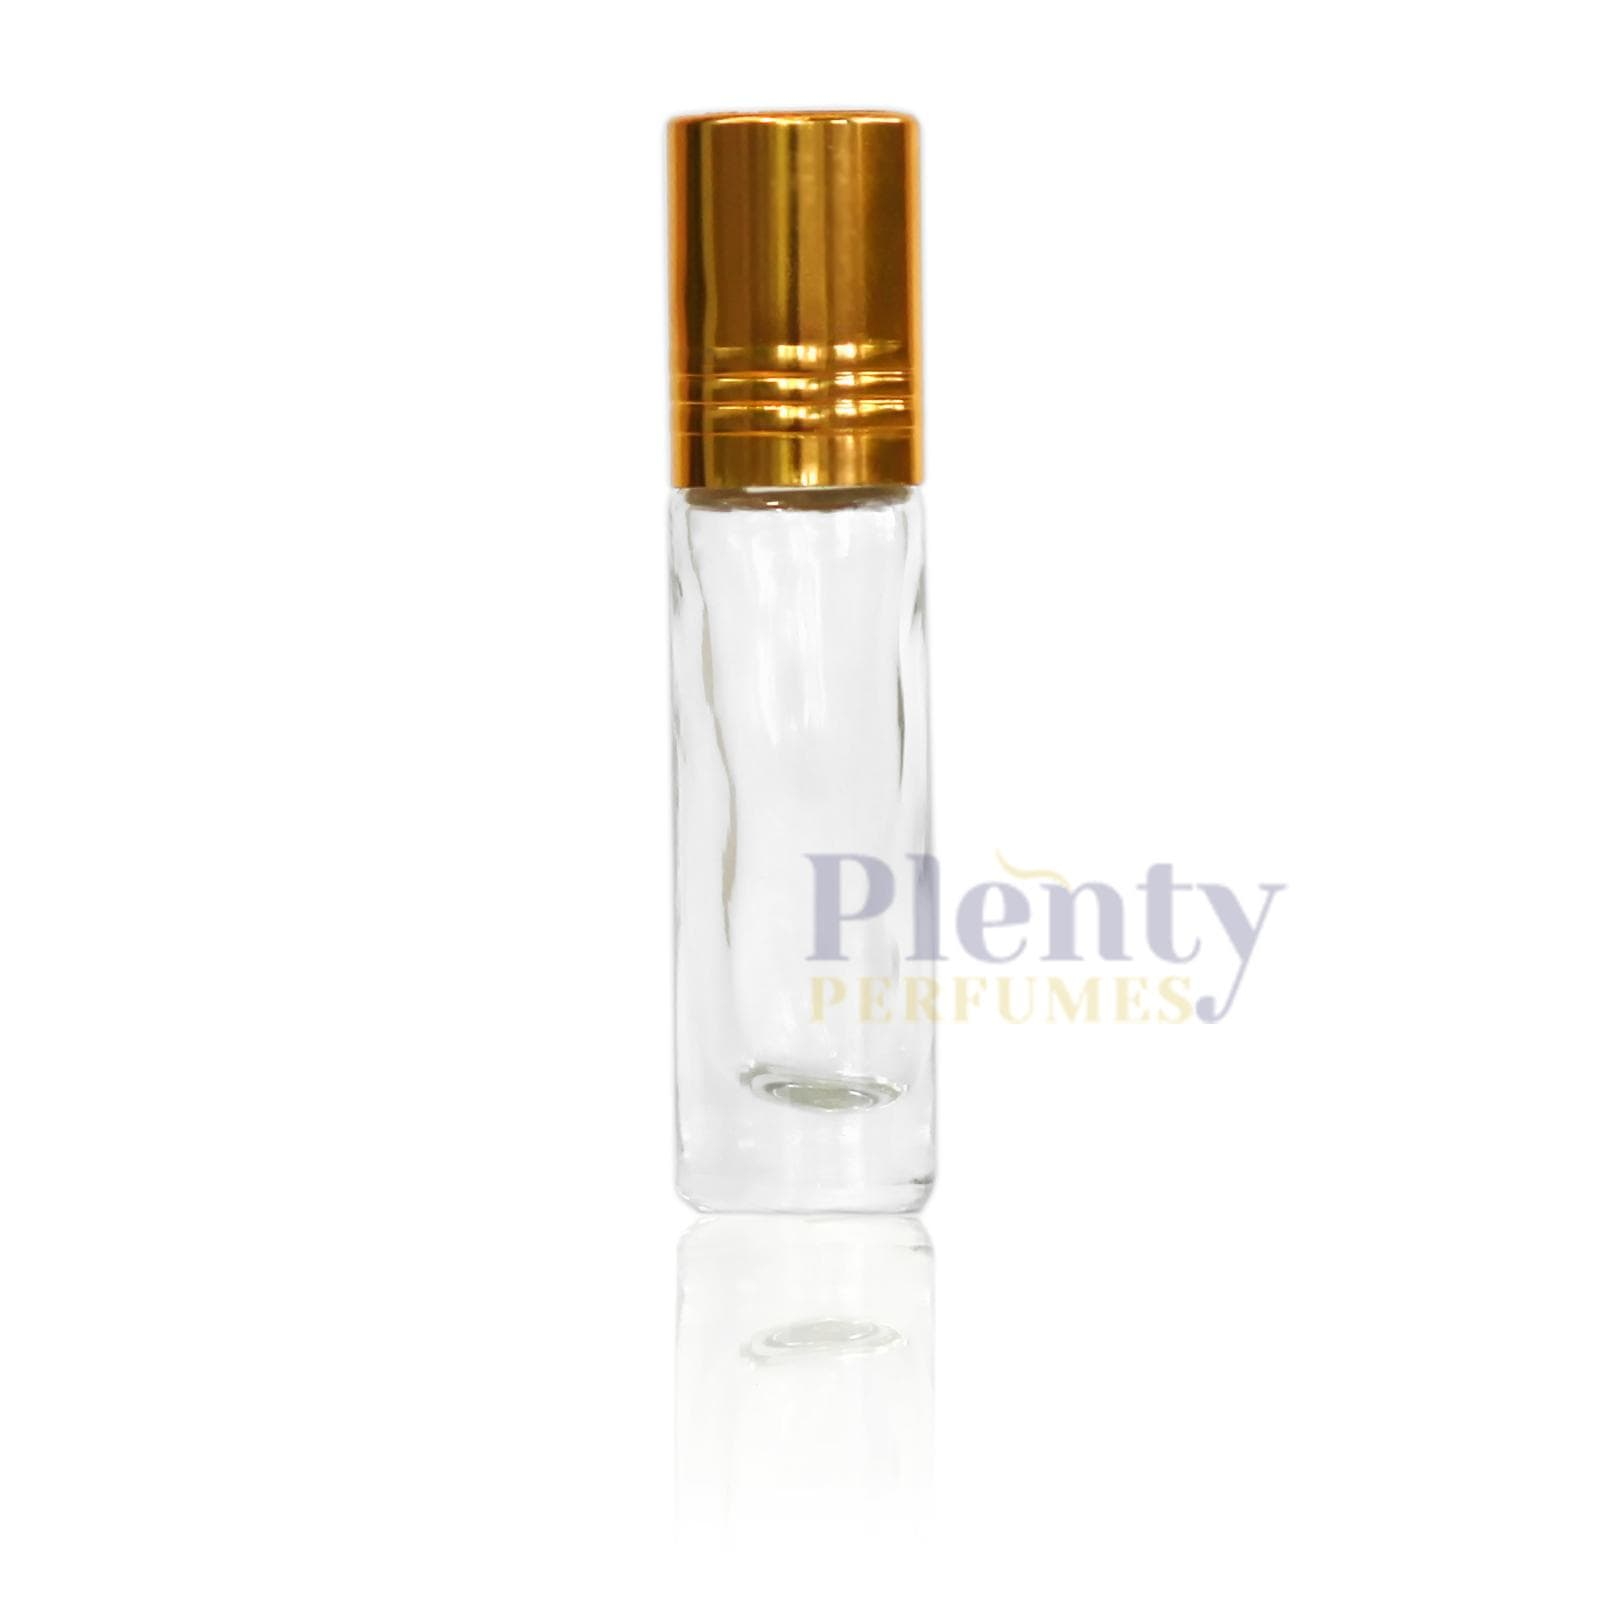 Perfume Oil Aromas Elements B. - Plenty Perfumes